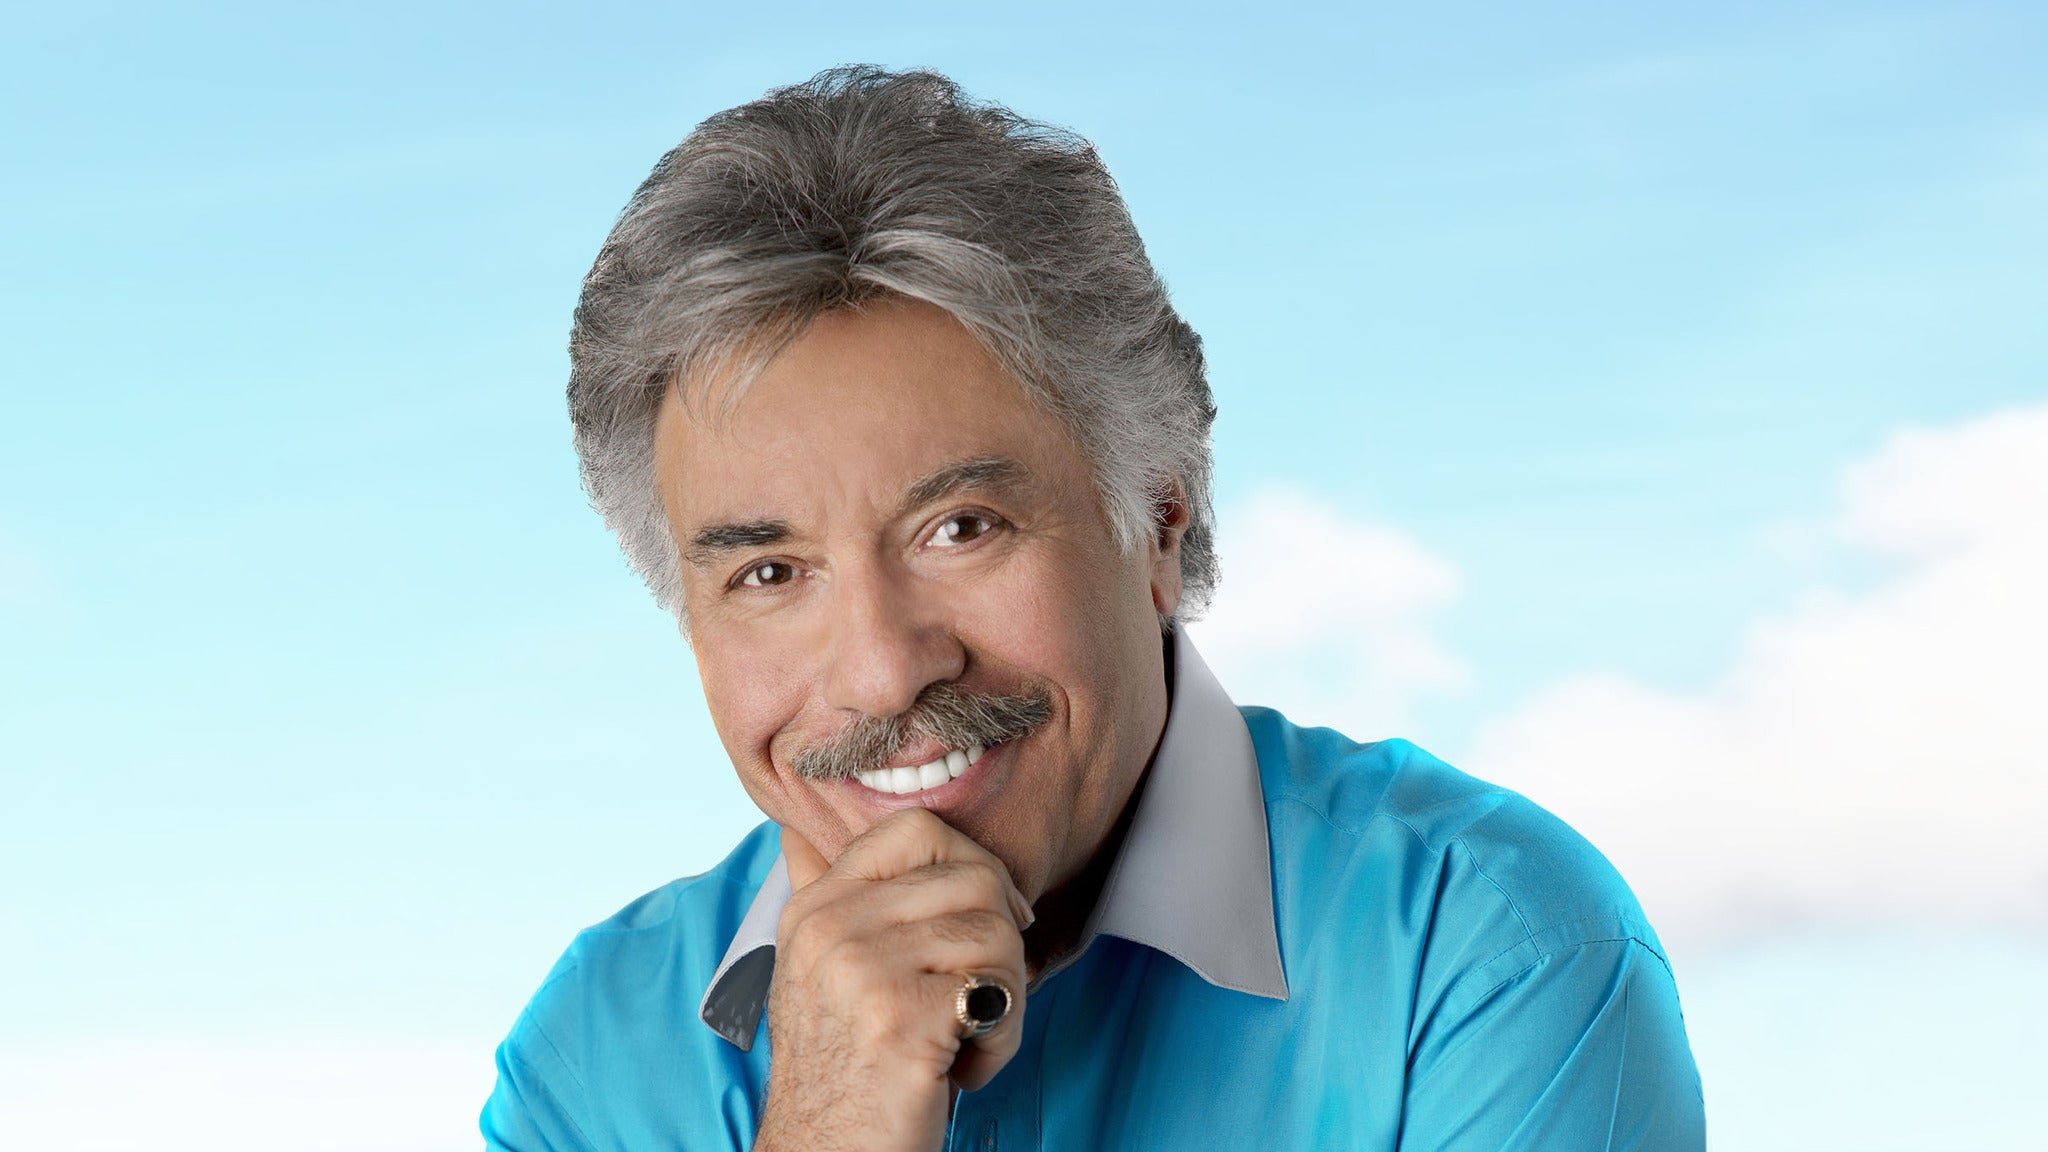 Tony Orlando at Effingham Performance Center